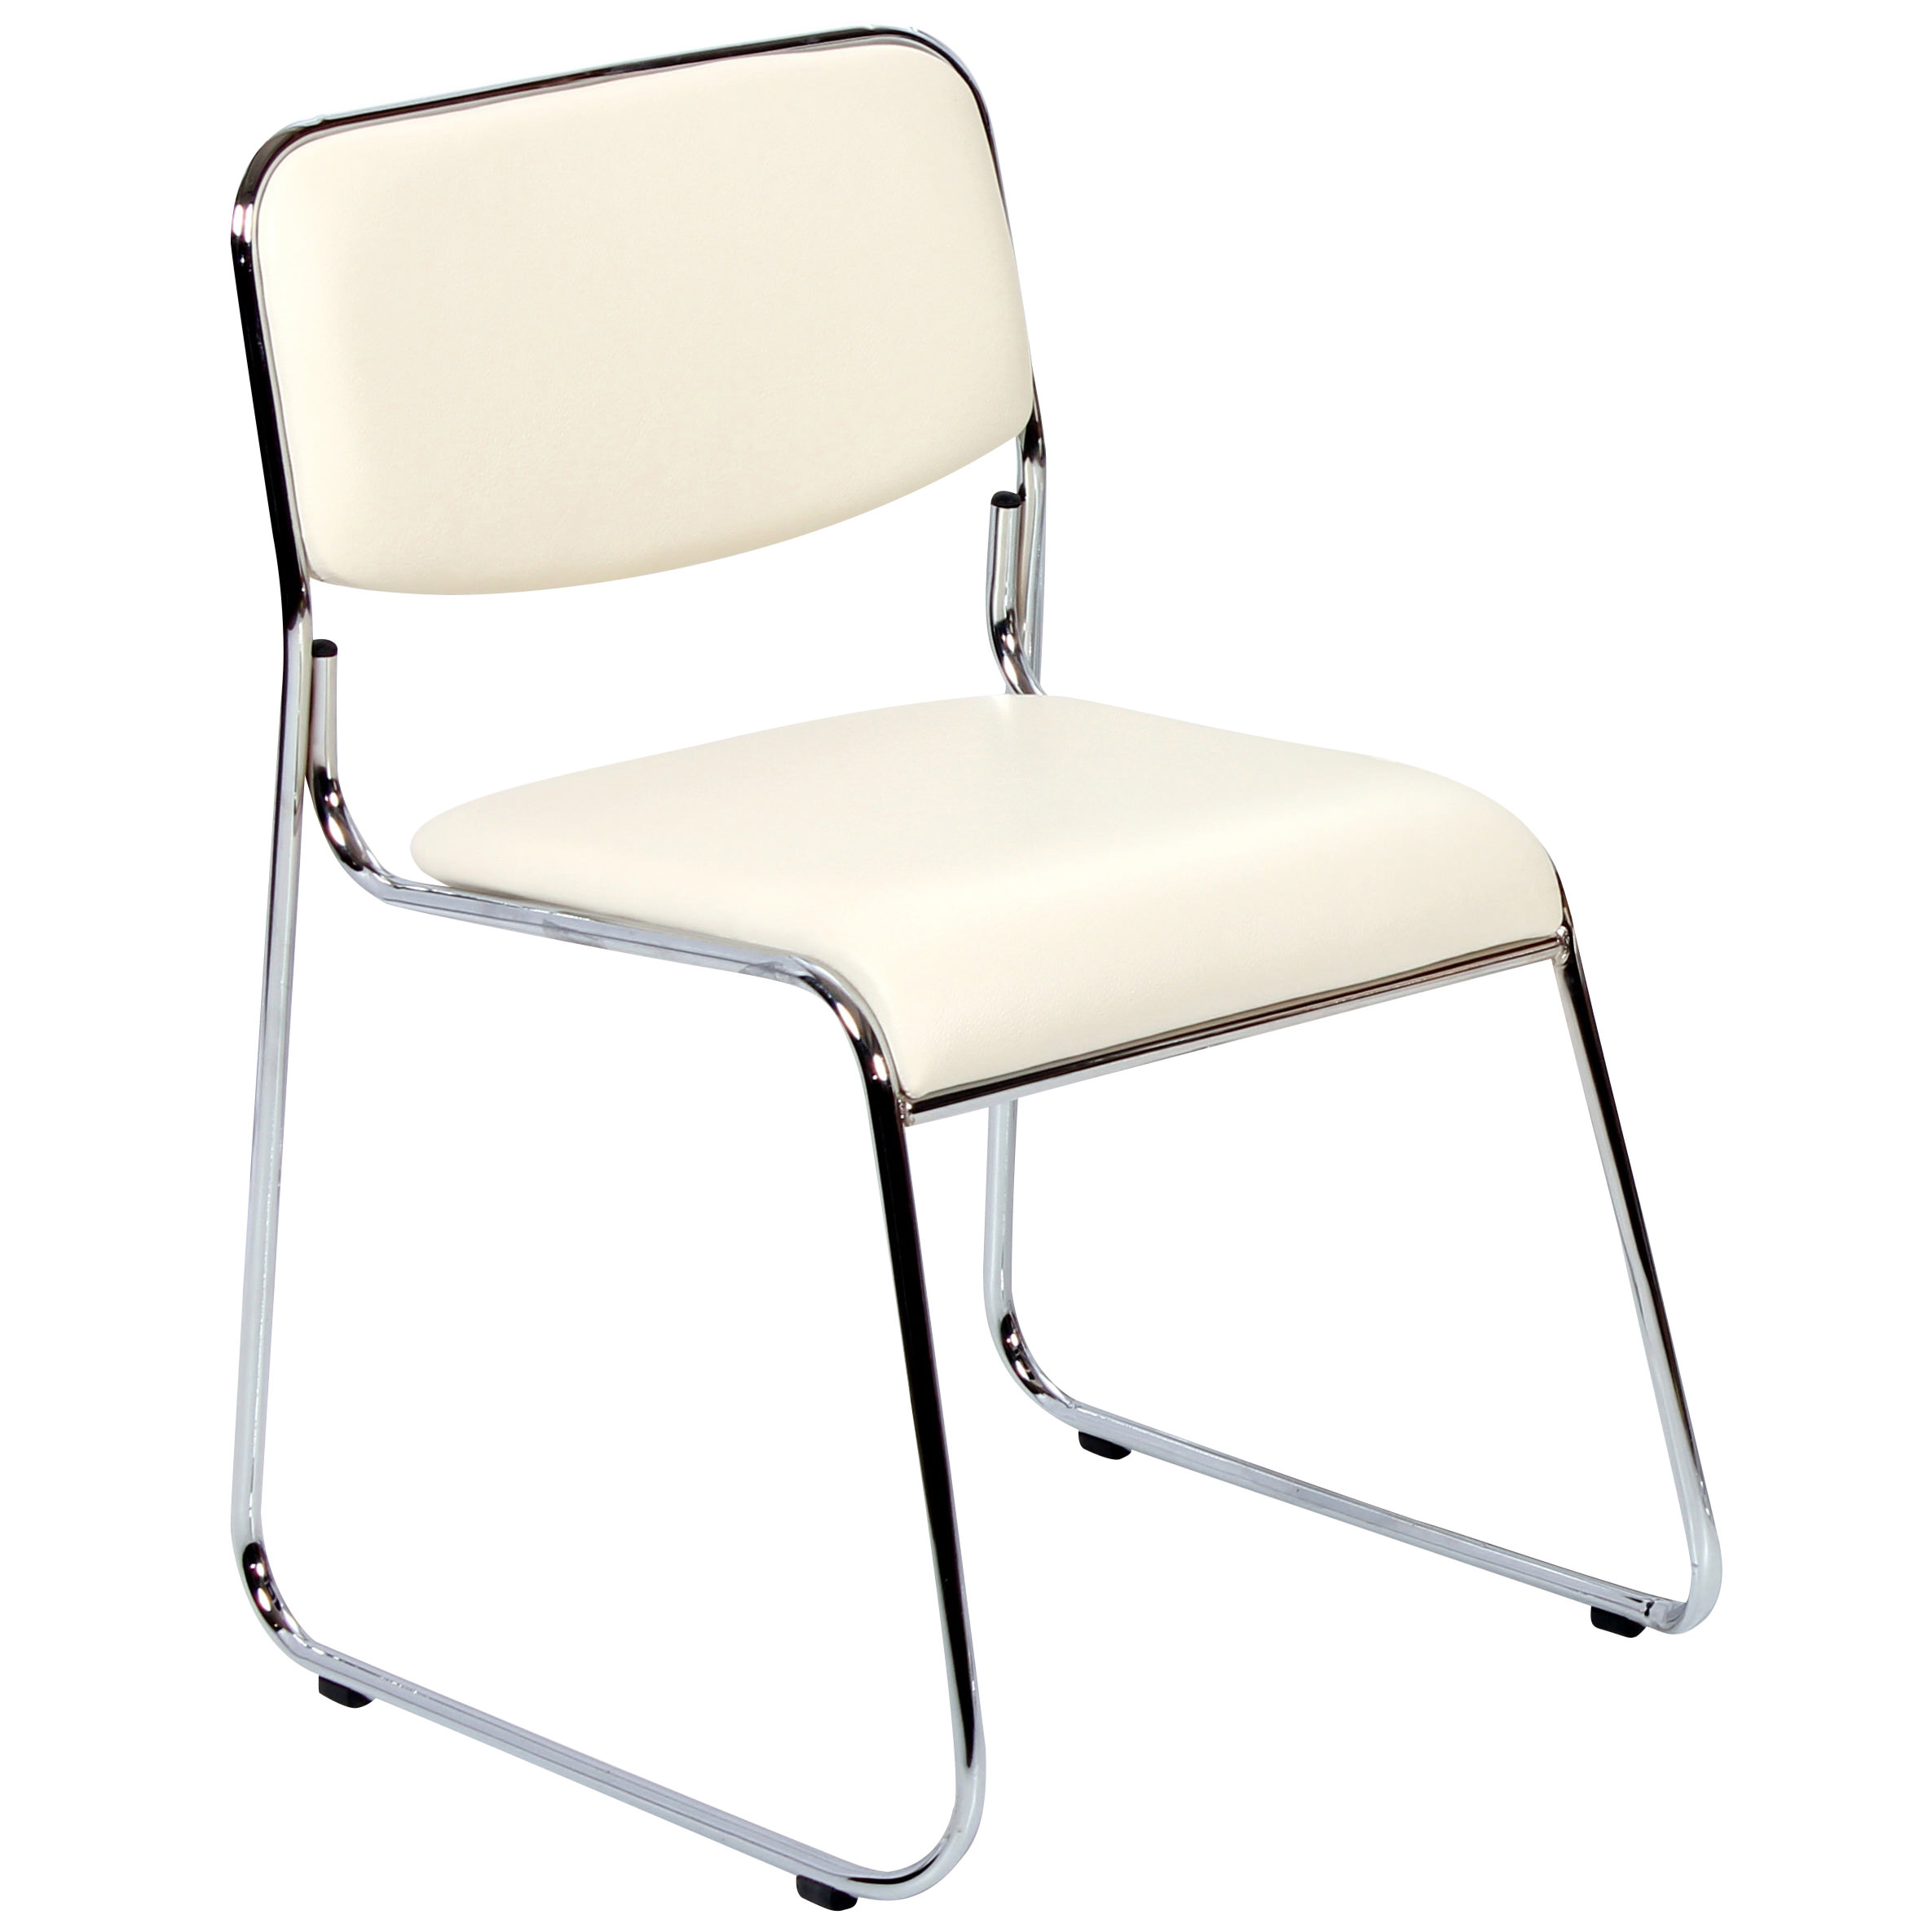 Pack Of 4 Chrome Leather Metal Dining Chair Seat Set Black Cream